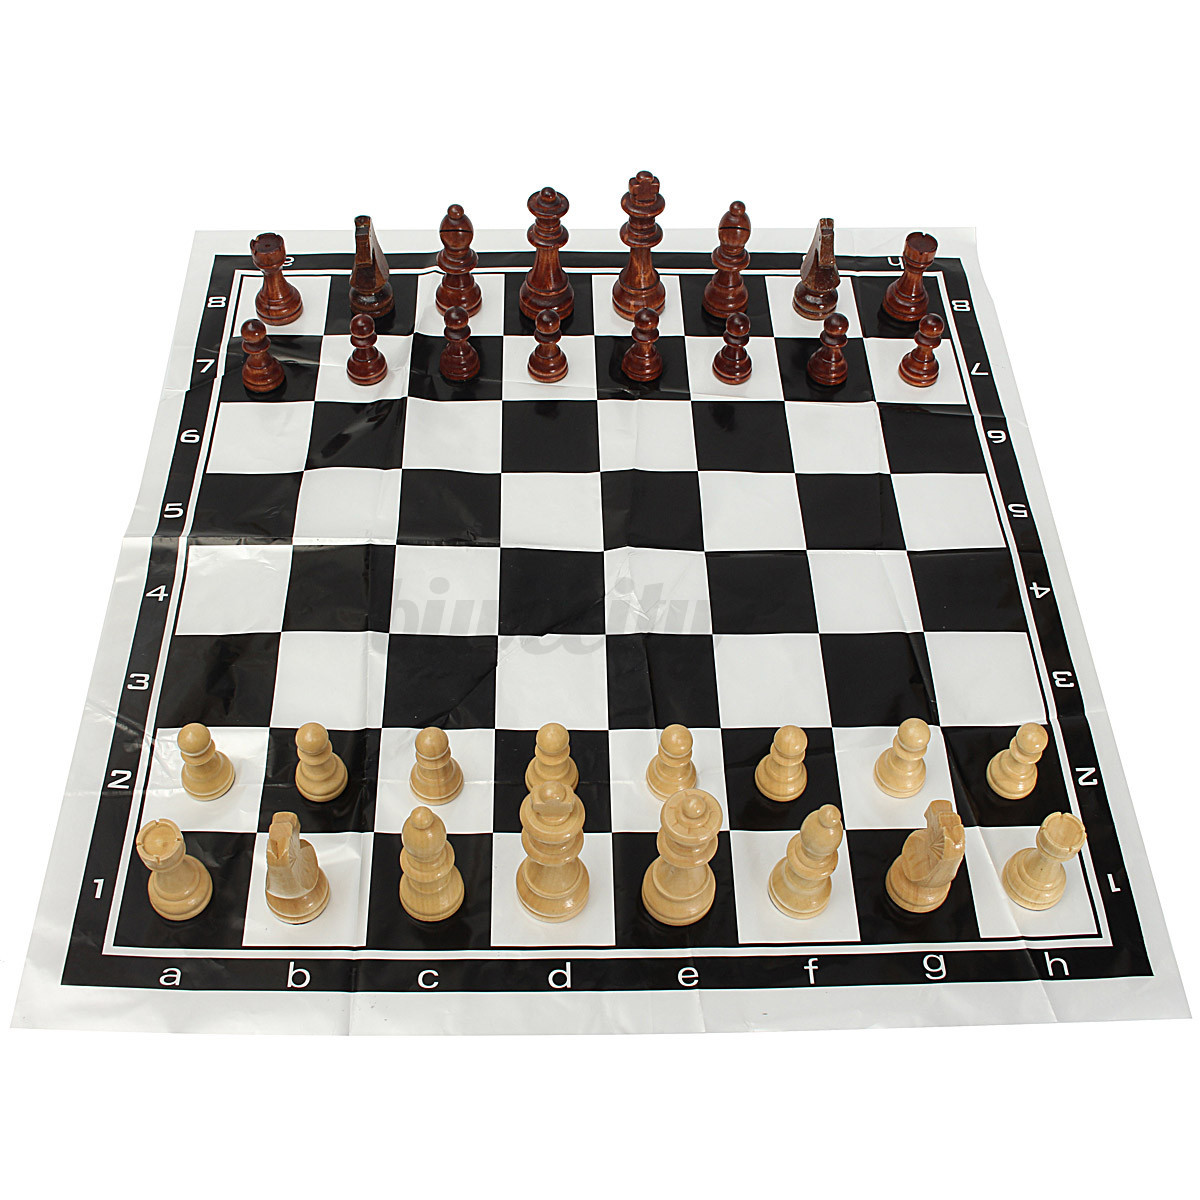 32tlg schachfiguren schach schachspiel holz chess board f r kinder 60 65 77 90mm ebay. Black Bedroom Furniture Sets. Home Design Ideas